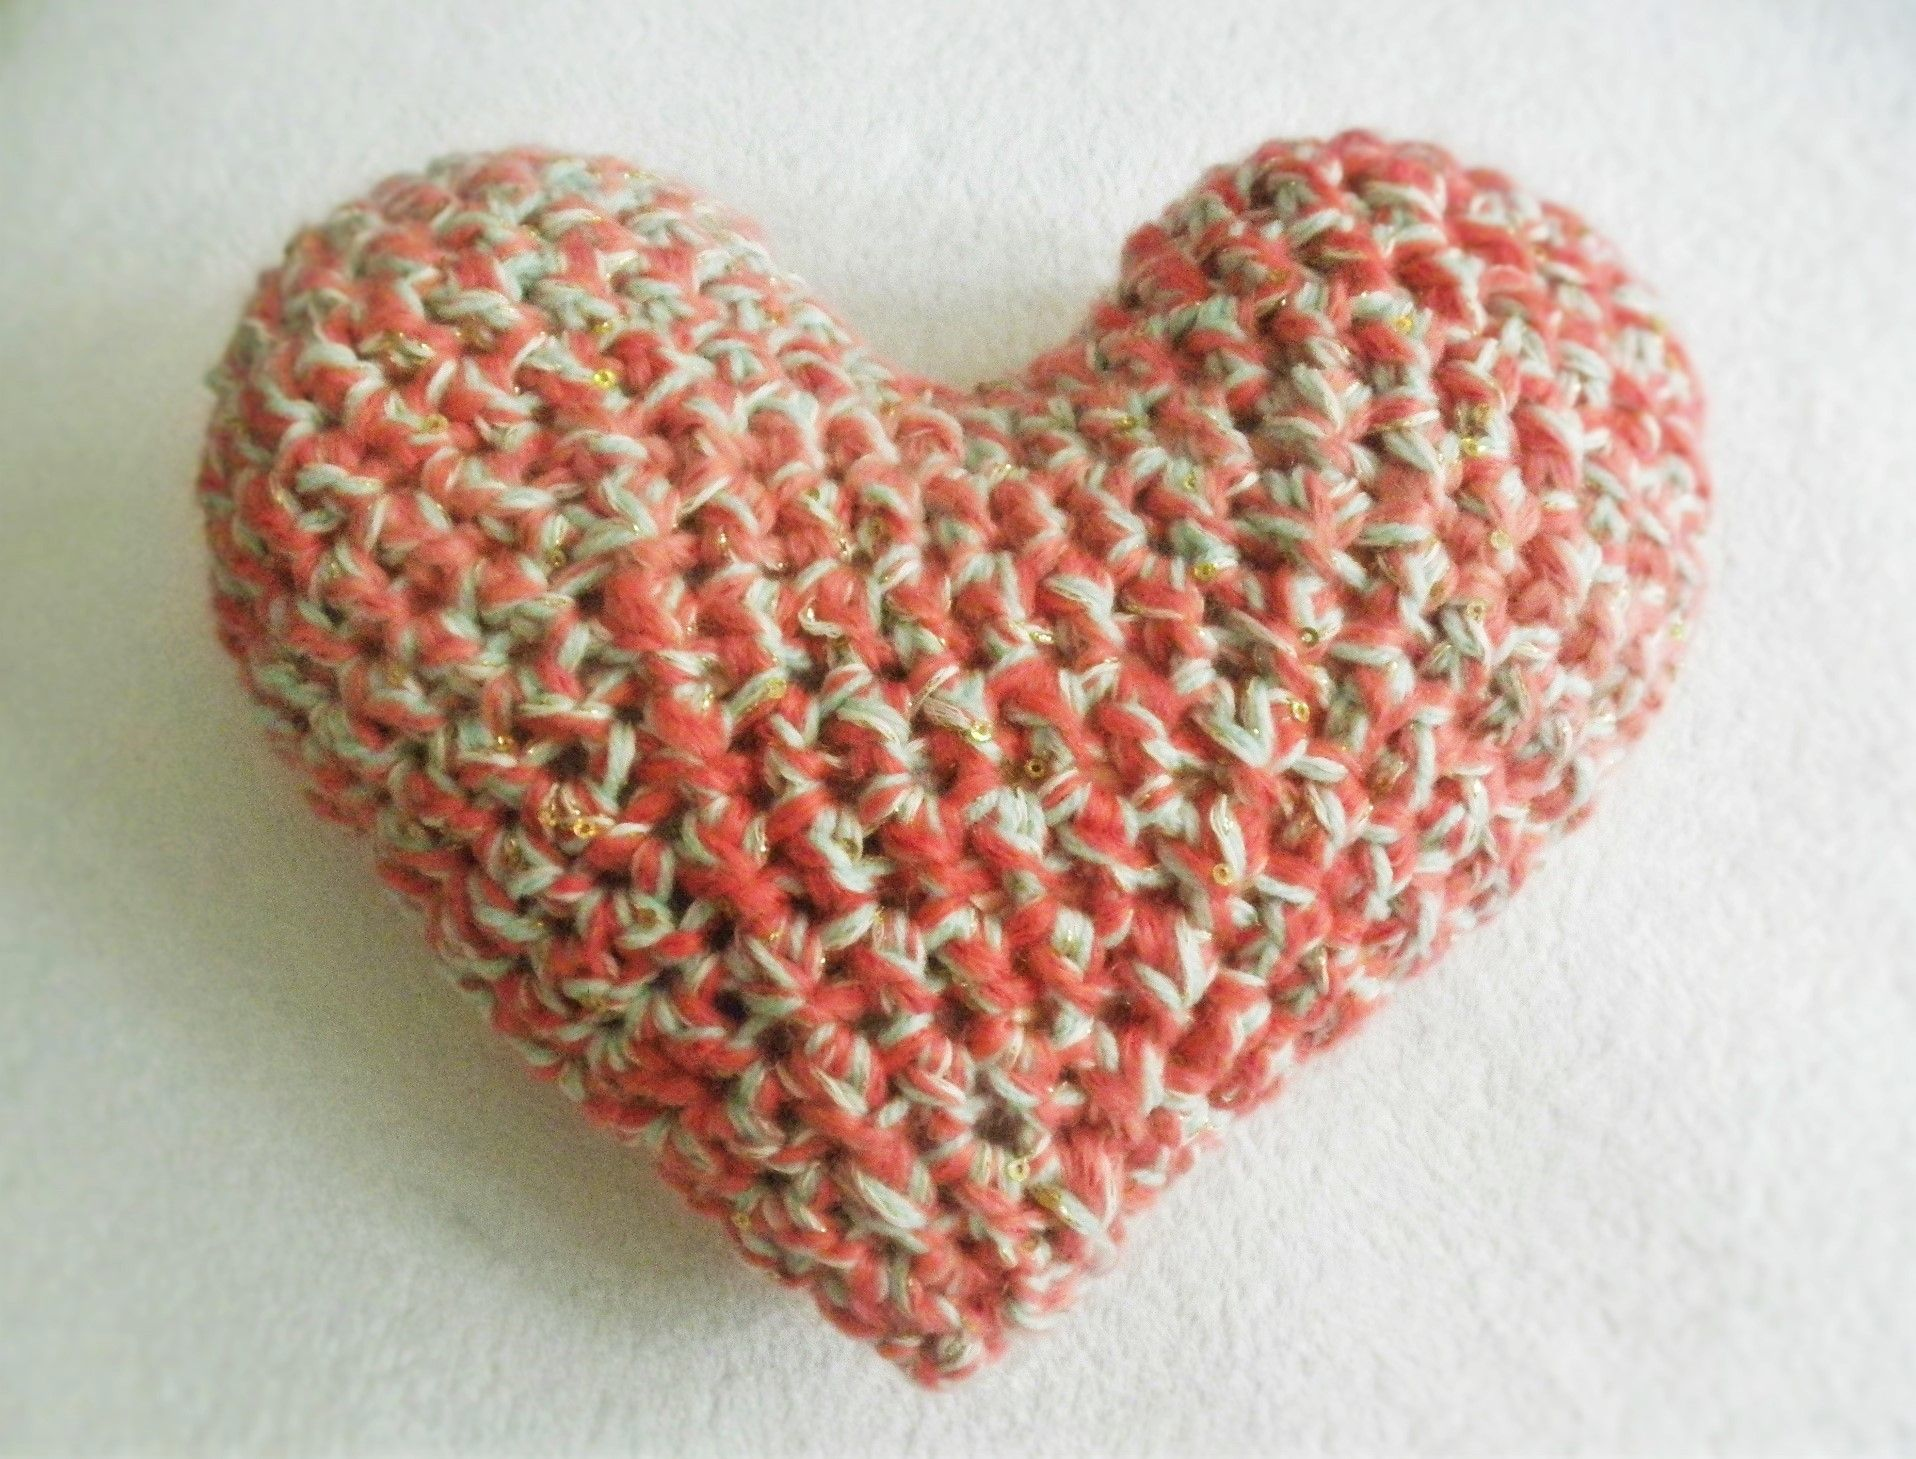 This Crochet Sparkle Heart Pillow is a cute accent for the baby's crib or nursery decor